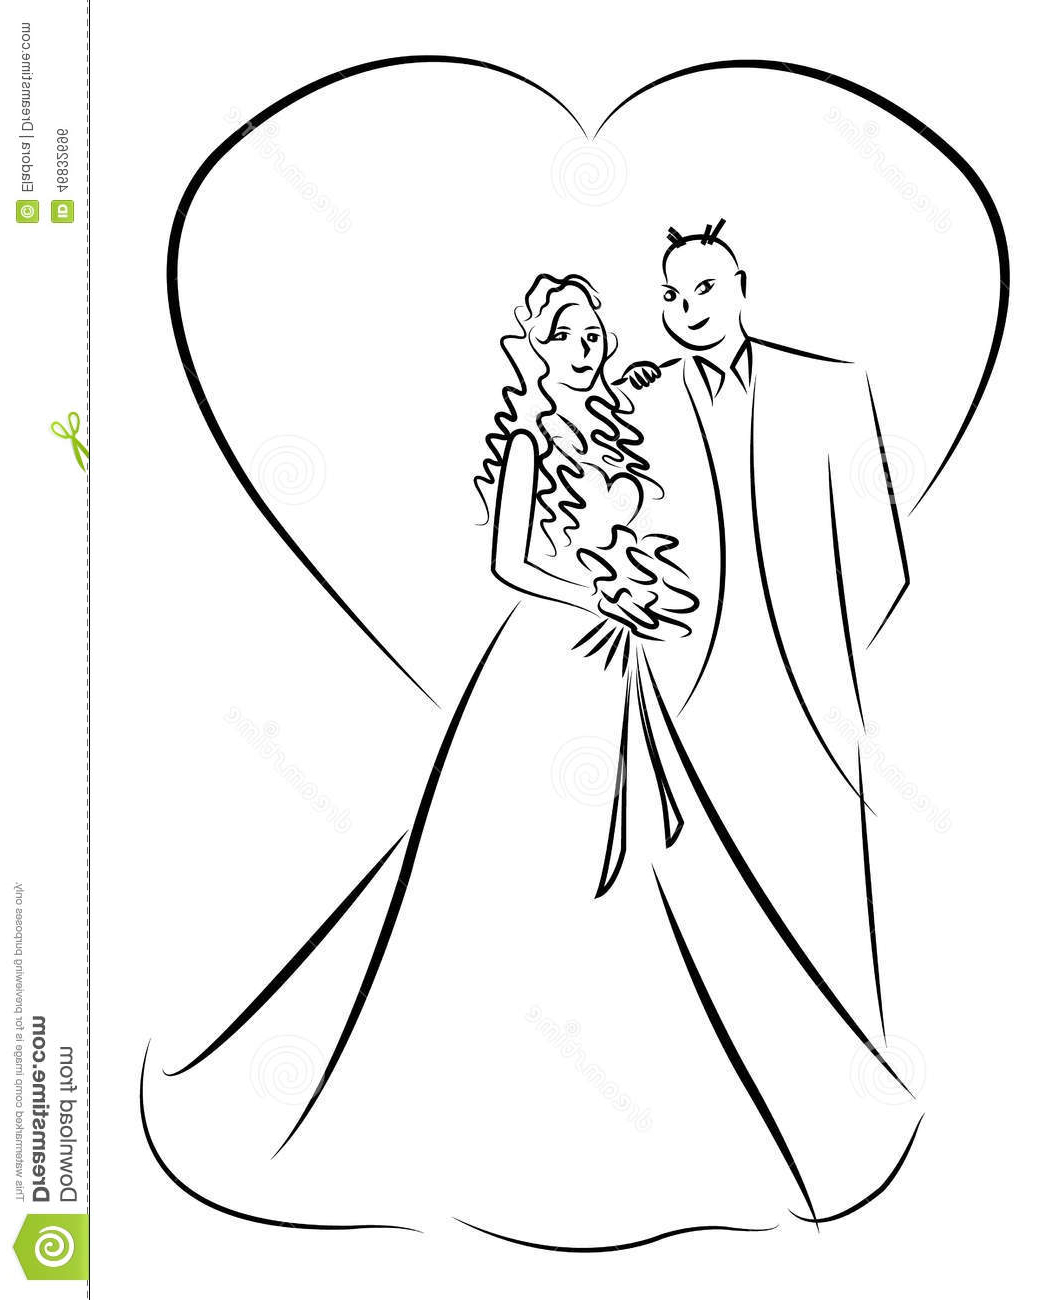 1038x1300 Wedding Couple Cute Drawing Stock Illustration